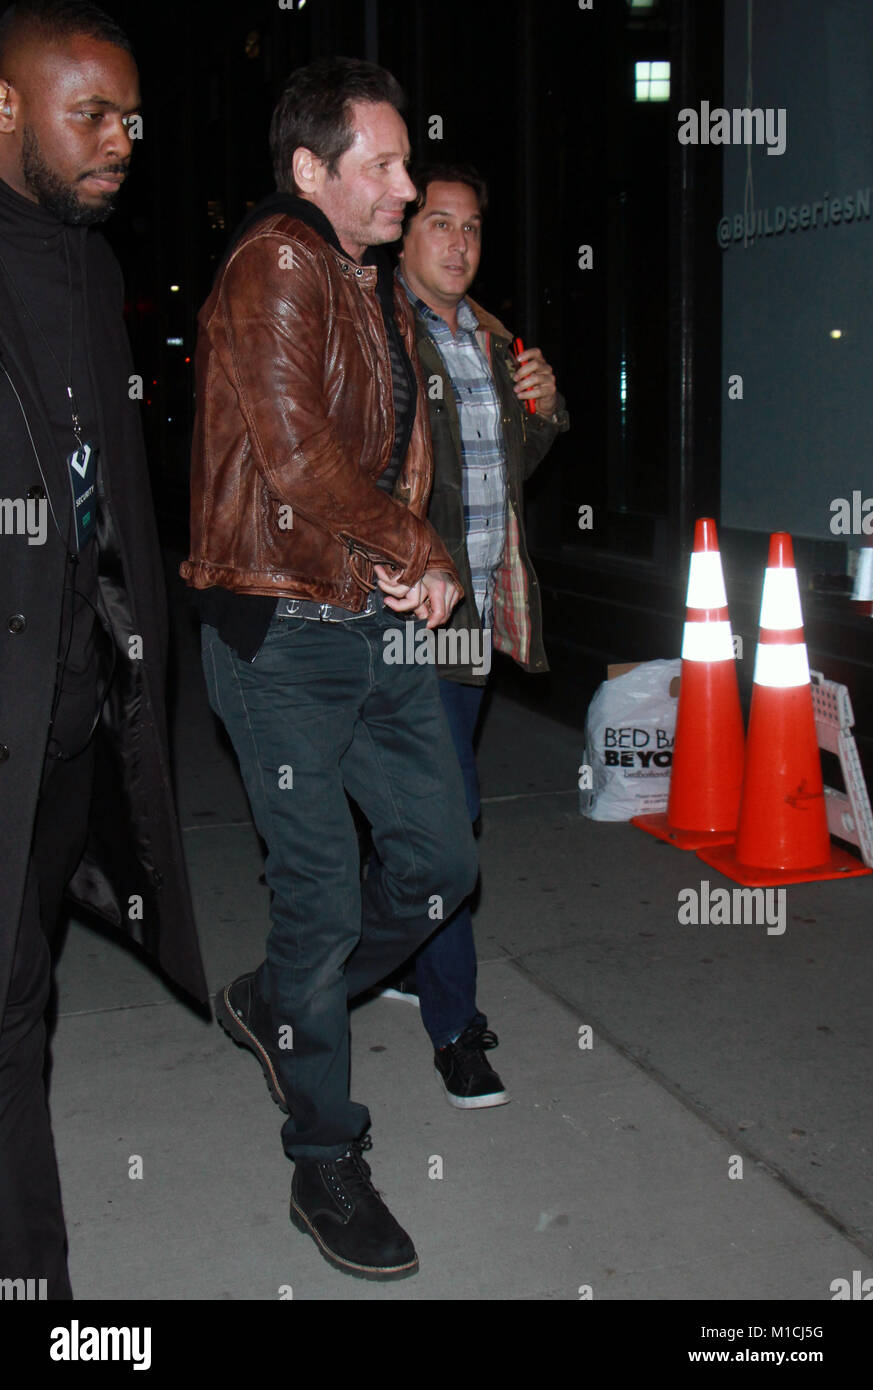 New York, NY, USA. 29th Jan, 2018. David Duchovny at Build Series promoting new season of X-Files and new music Stock Photo